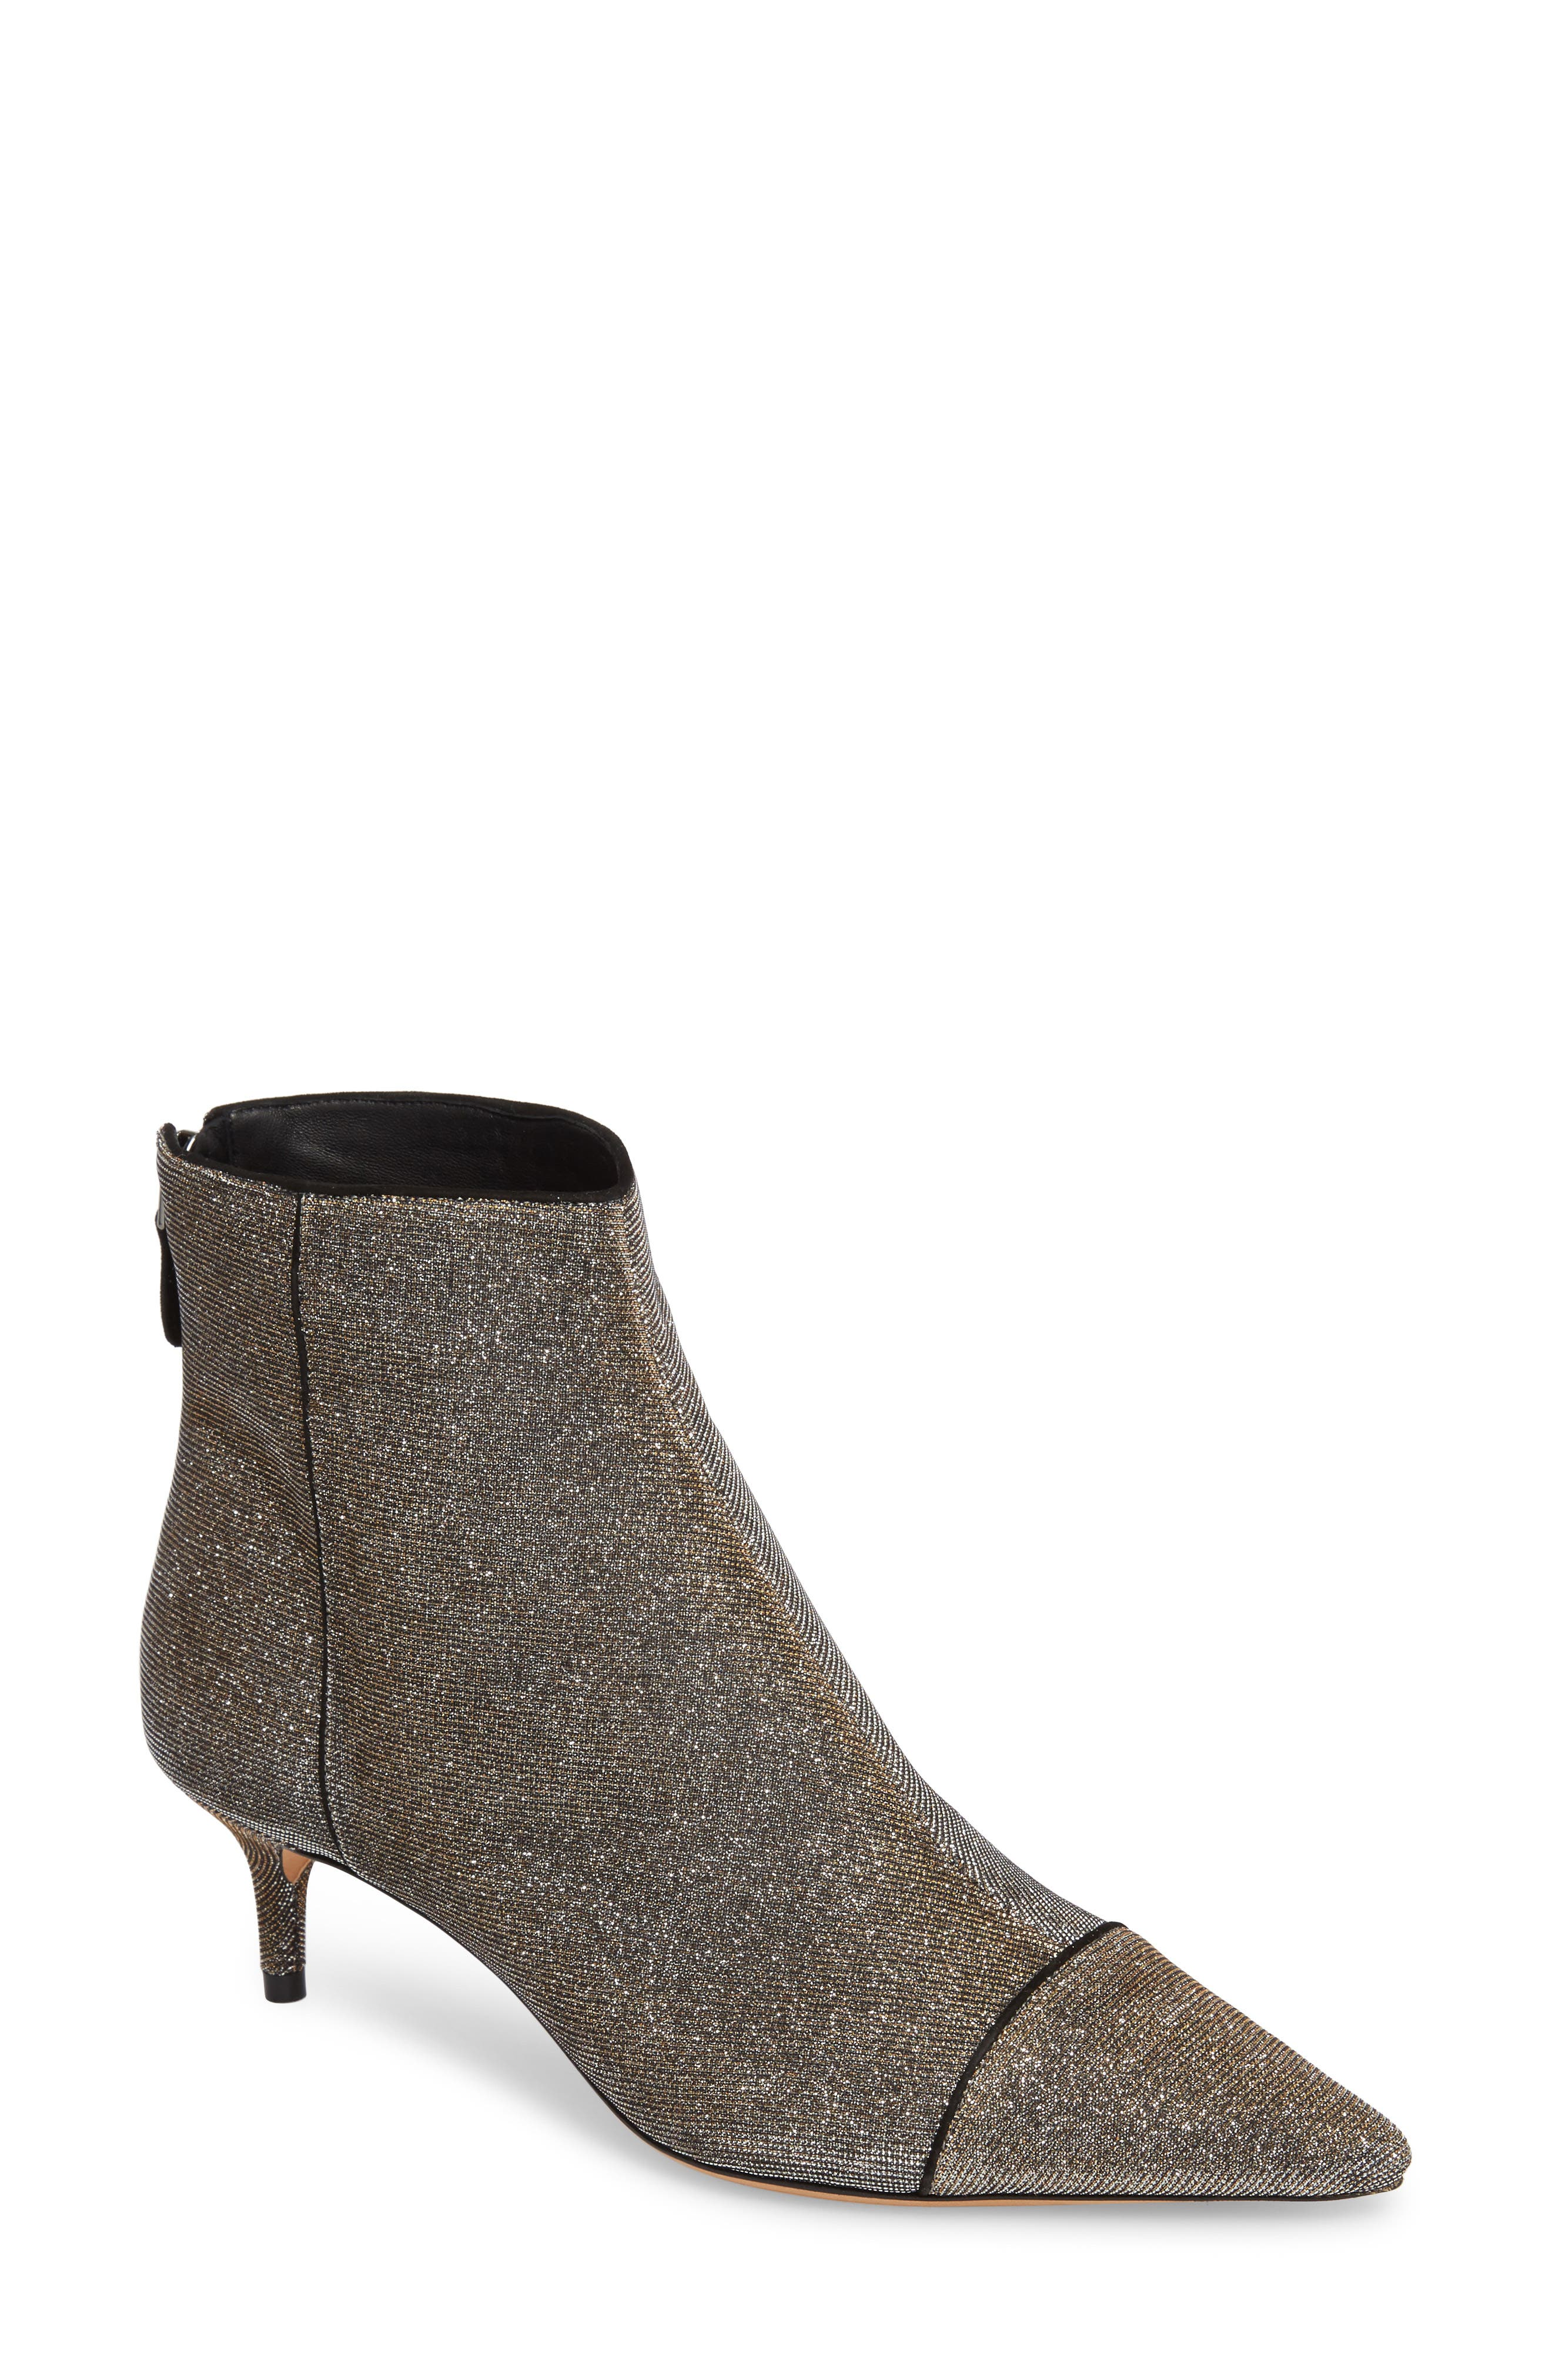 Alternate Image 1 Selected - Alexandre Birman Kittie Pointy Toe Bootie (Women)